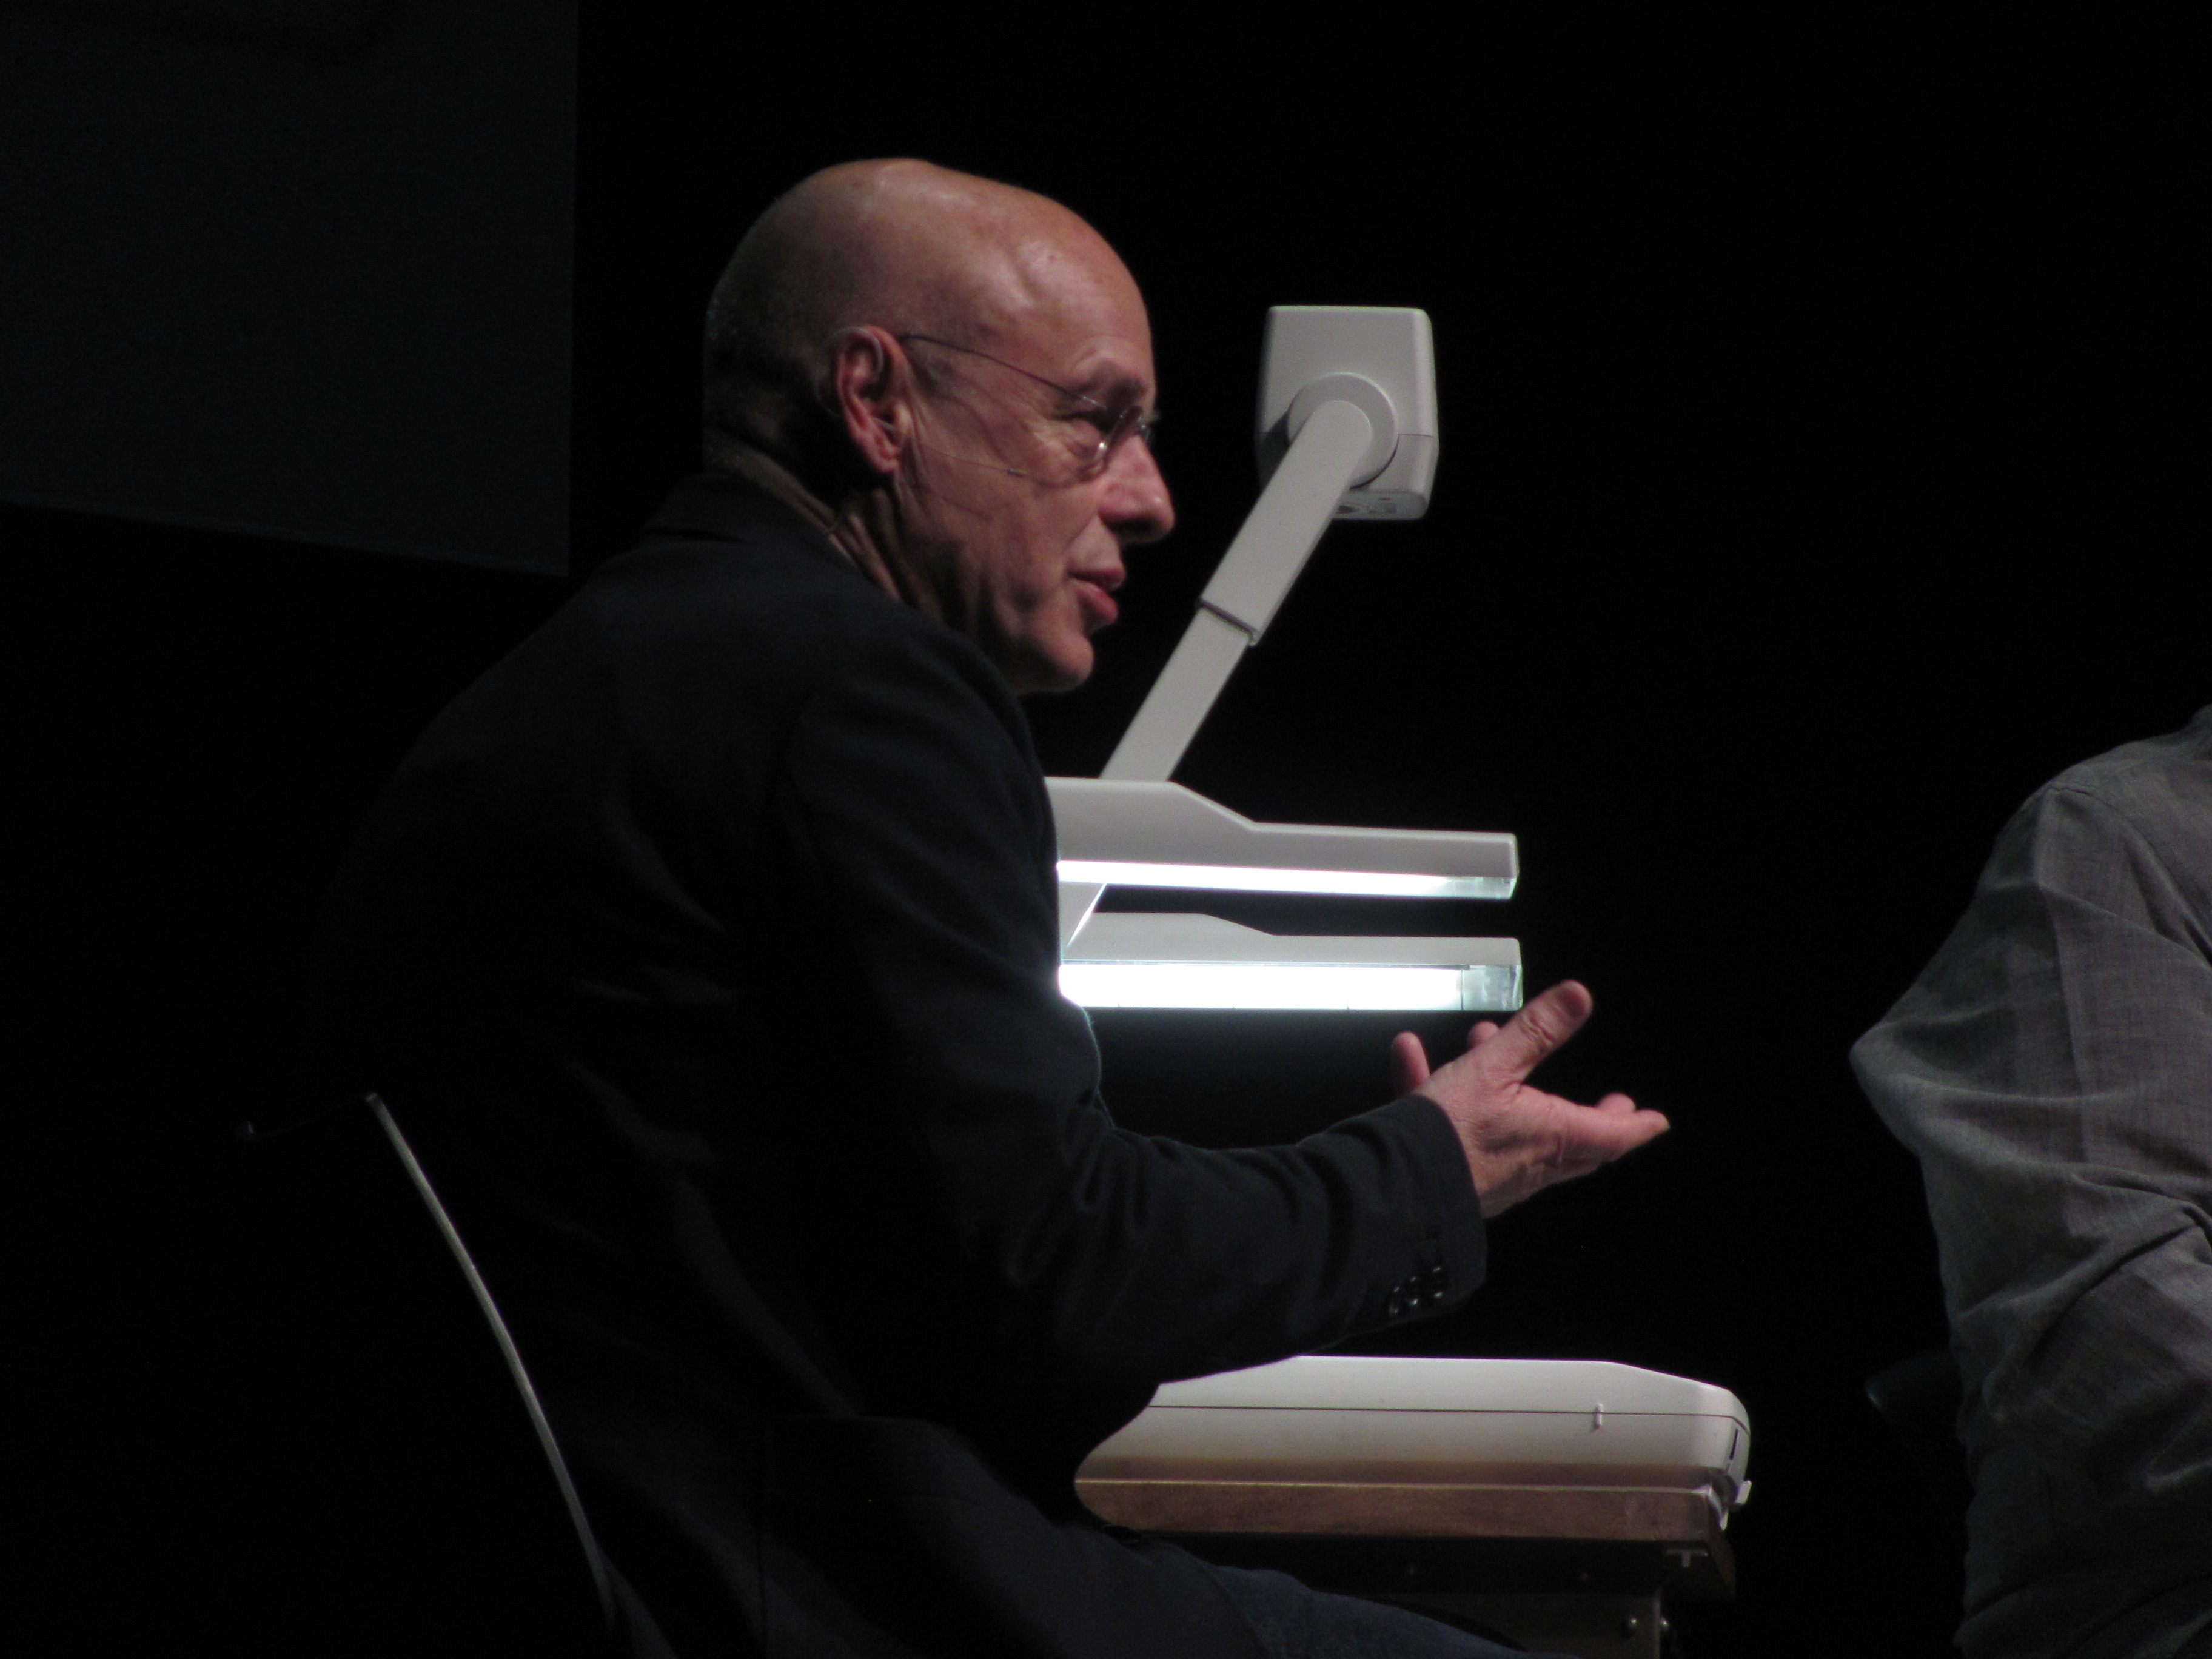 brian eno long now essay Brian eno is a musician, composer, record producer, installation artist, and author as a founding board member, he named the long now foundation and the clock of the long now he has worked closely with danny hillis on the clock's chime generator—developing the concept and the actual bells which will ring differently every day for 10,000 years.